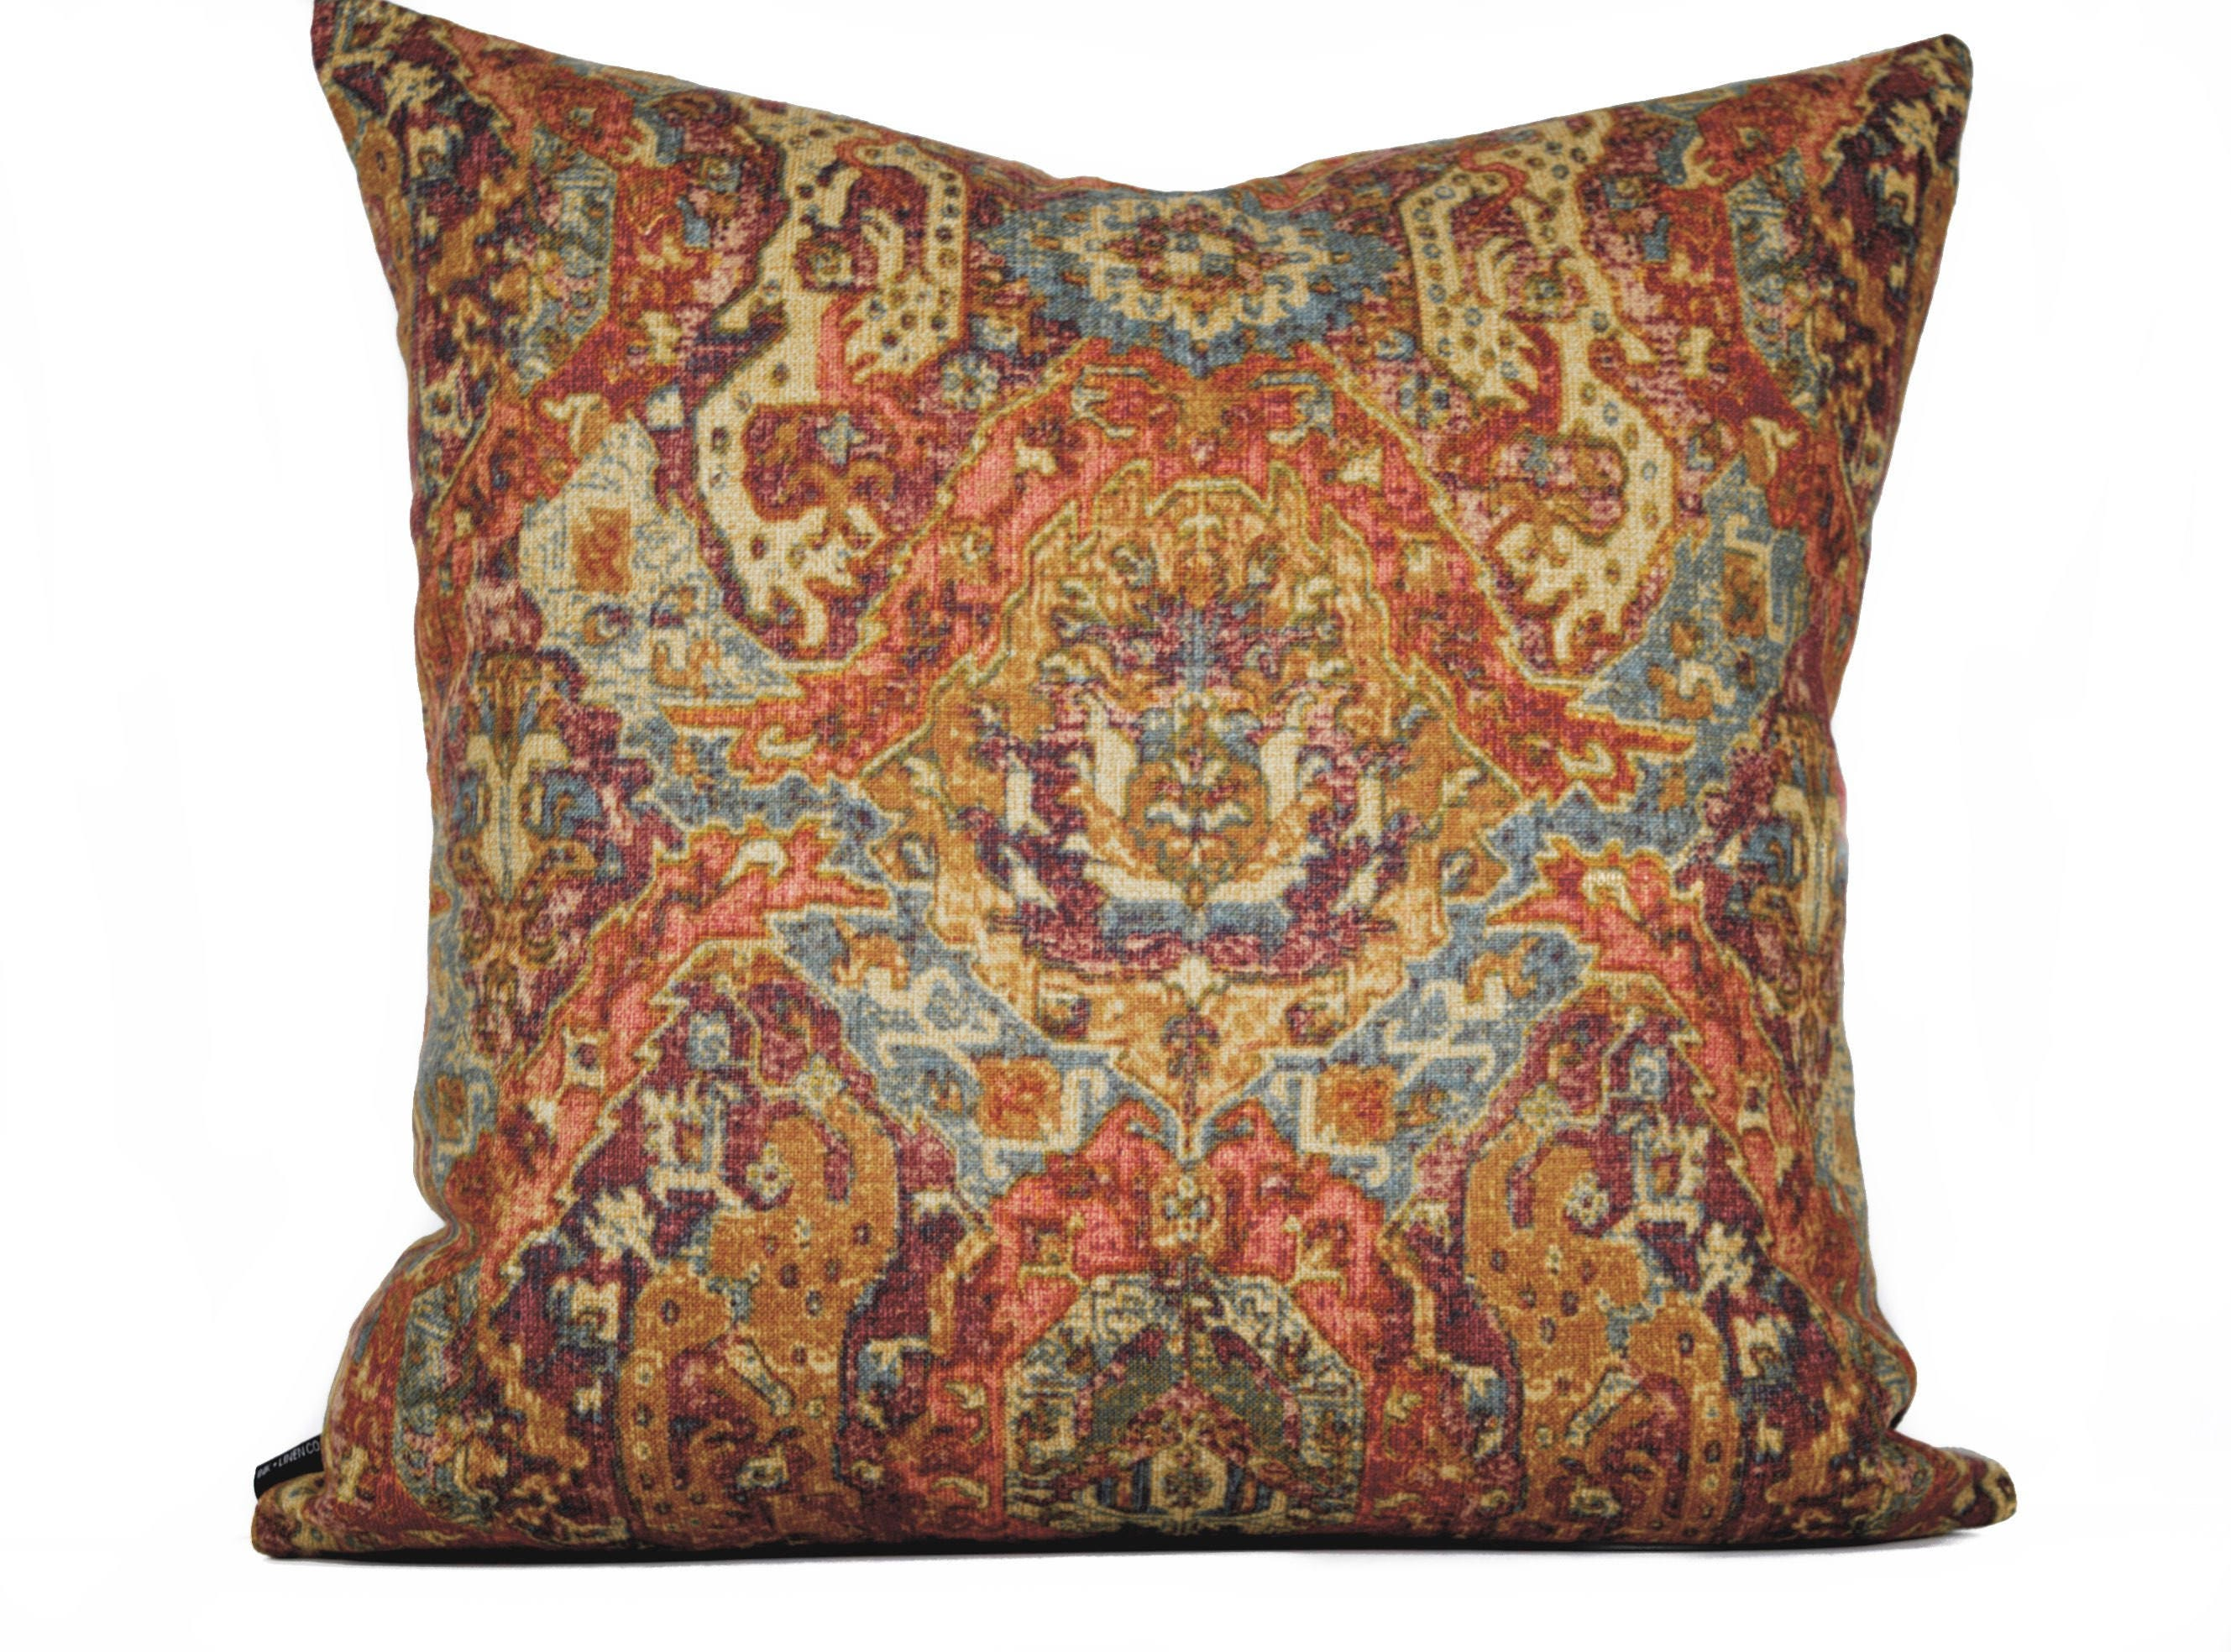 floral fidelio black made linen fabric swavelle mill products limited decorative jewel creek custom only tone cliffside edition cover pillows pillow at